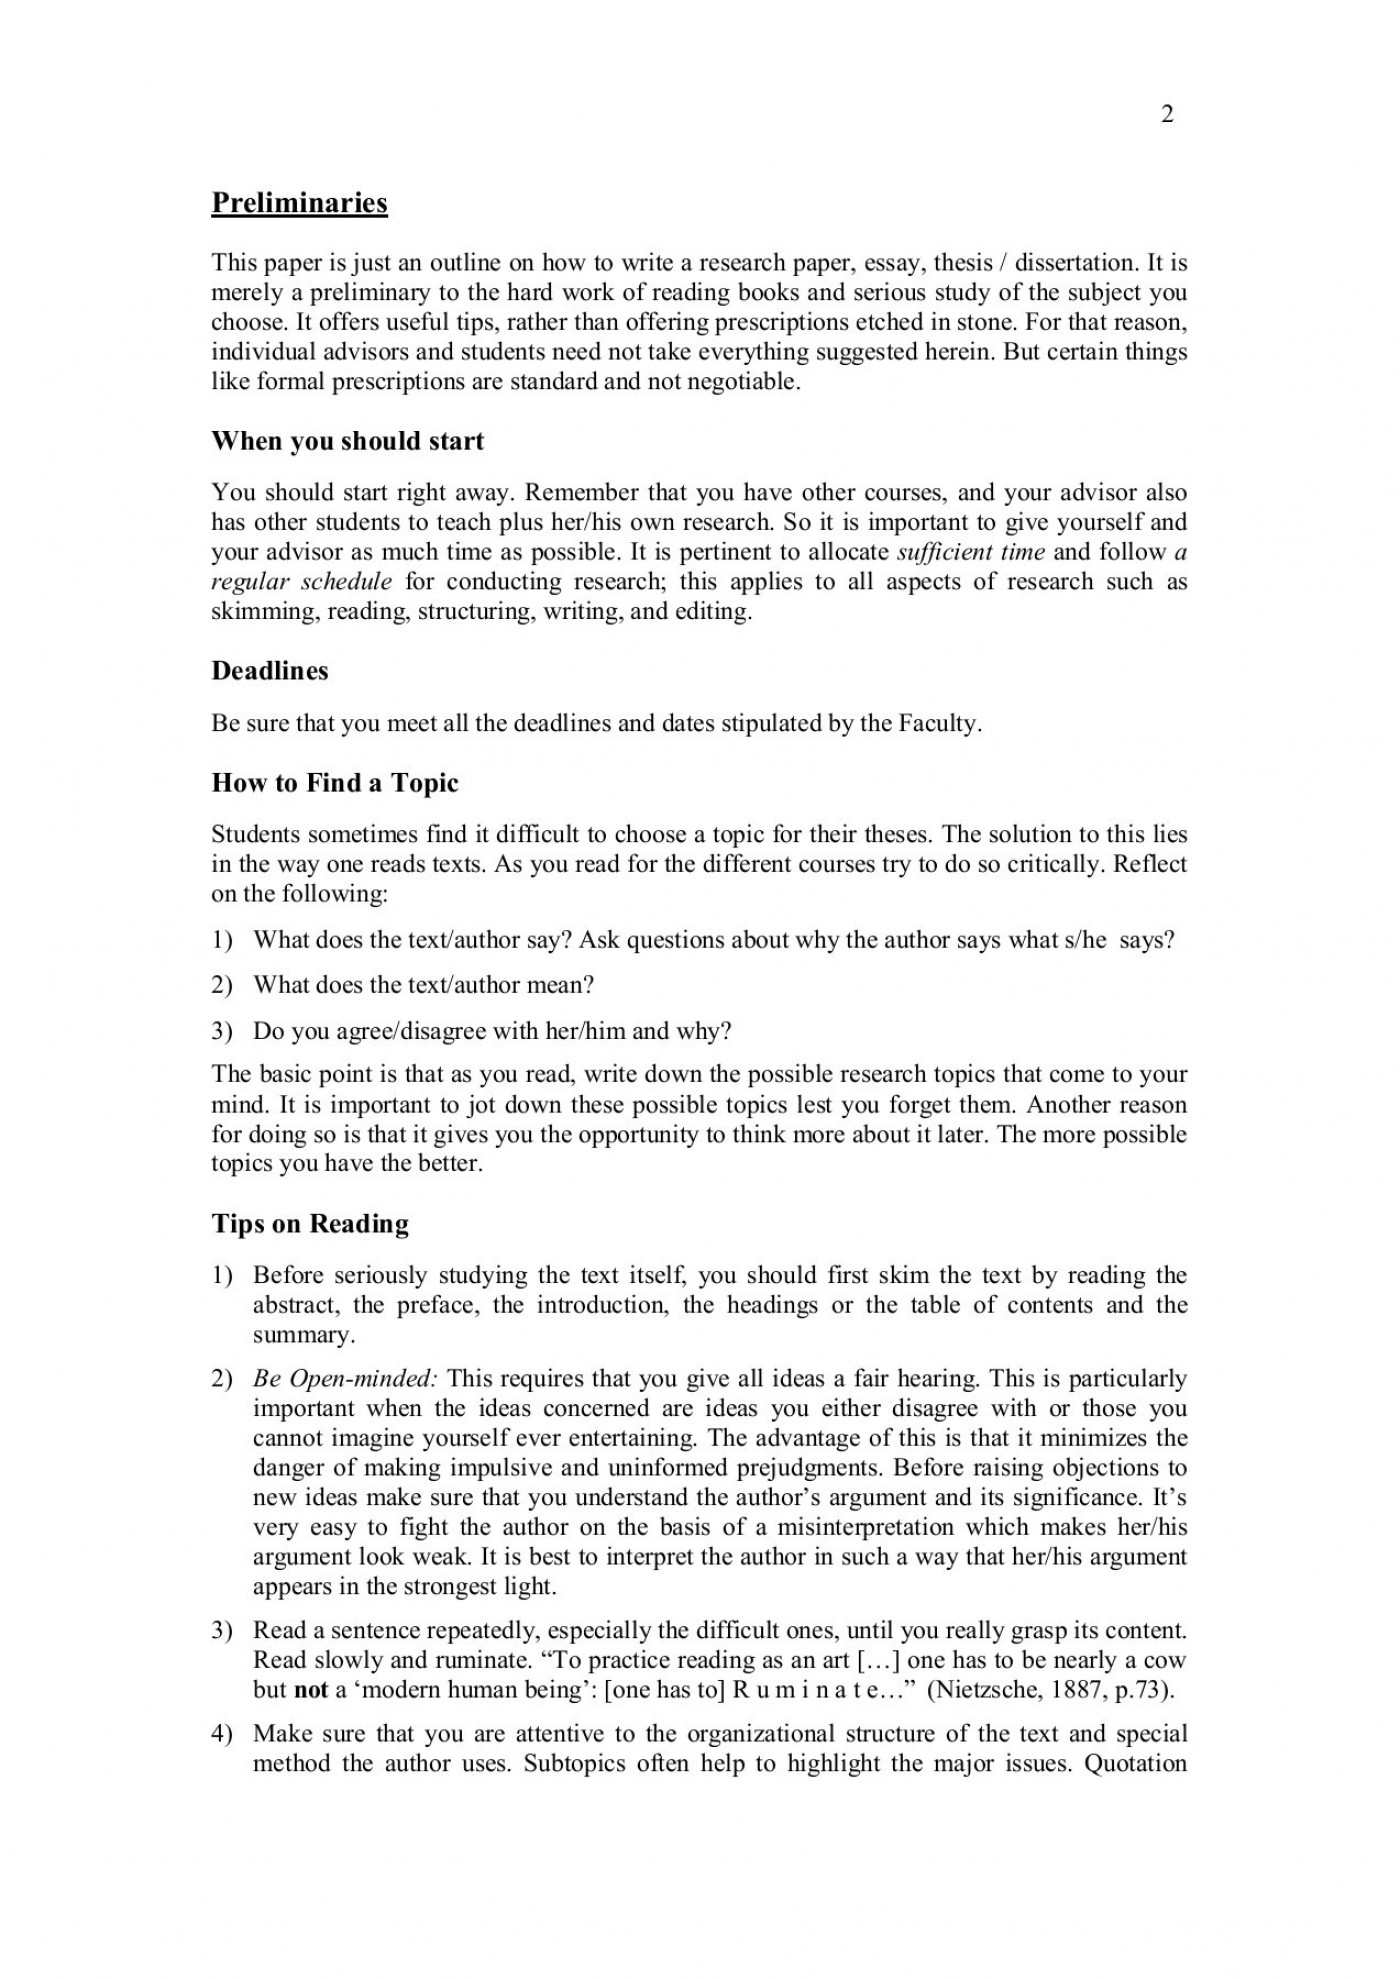 003 Research Paper Philosophy Of Religion Topics Awful 1400